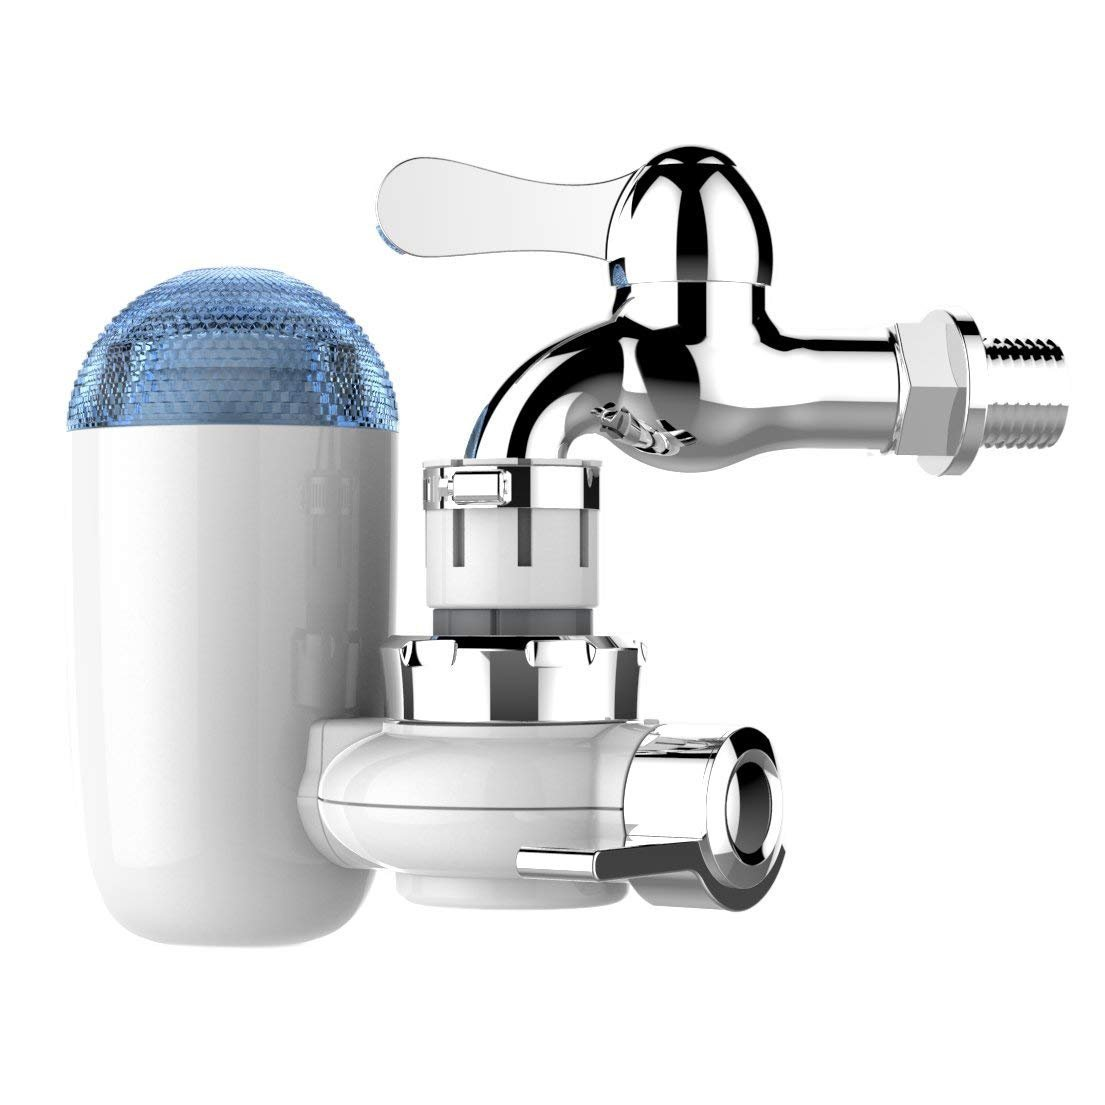 IREALIST Faucet Water Filter, Water Filtration Faucet Mount Faucet Water Filter System, Faucet Mount Drinking Tap Water Filter (White)